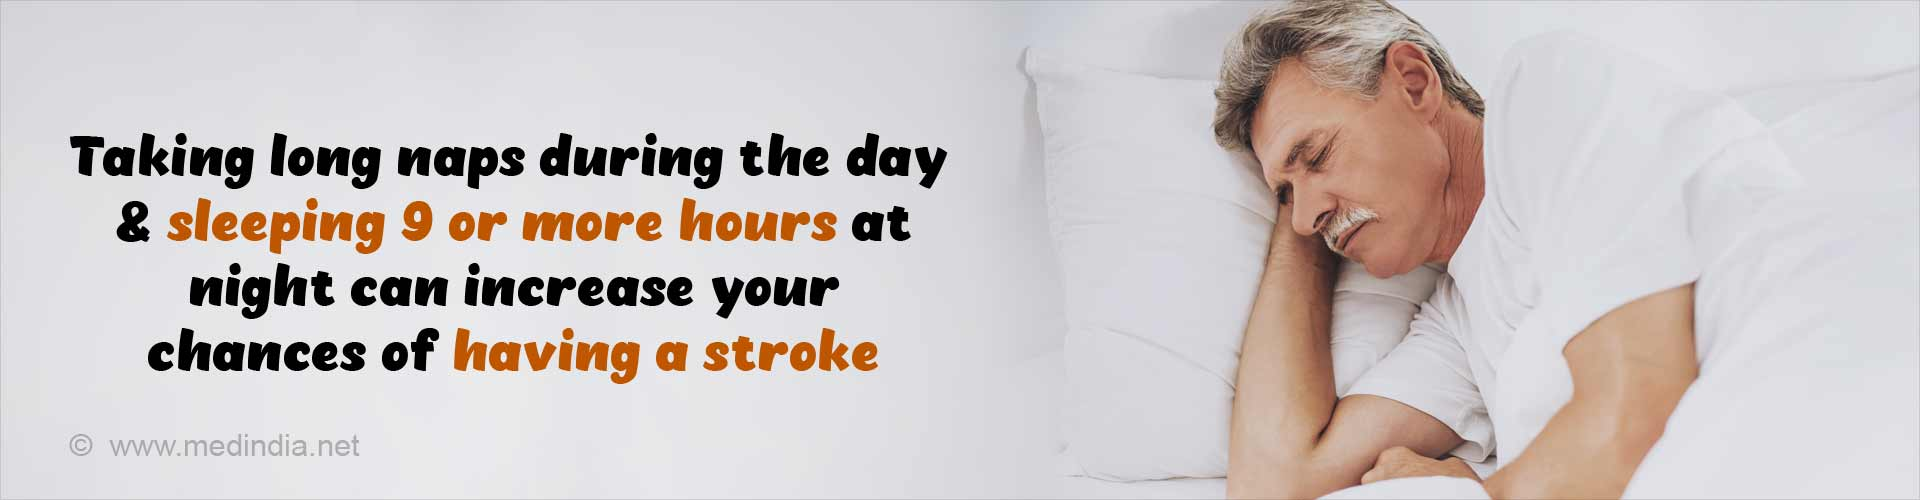 Taking long naps during the day and sleeping 9 or more hours at night can increase your chances of having a stroke.